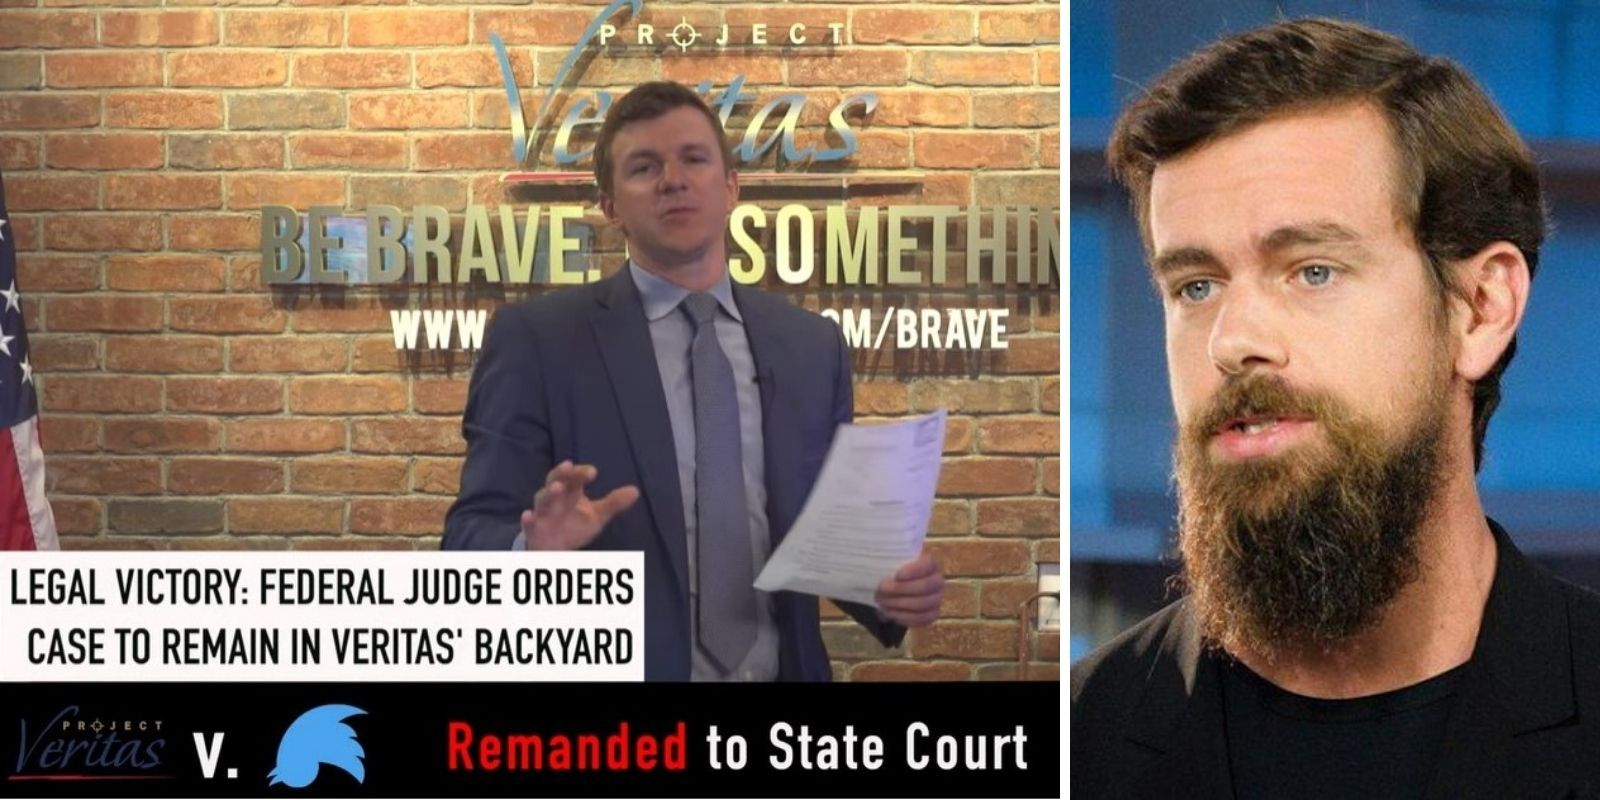 LEGAL VICTORY: Project Veritas founder James O'Keefe defeats Twitter's attempt to transfer case to friendly court